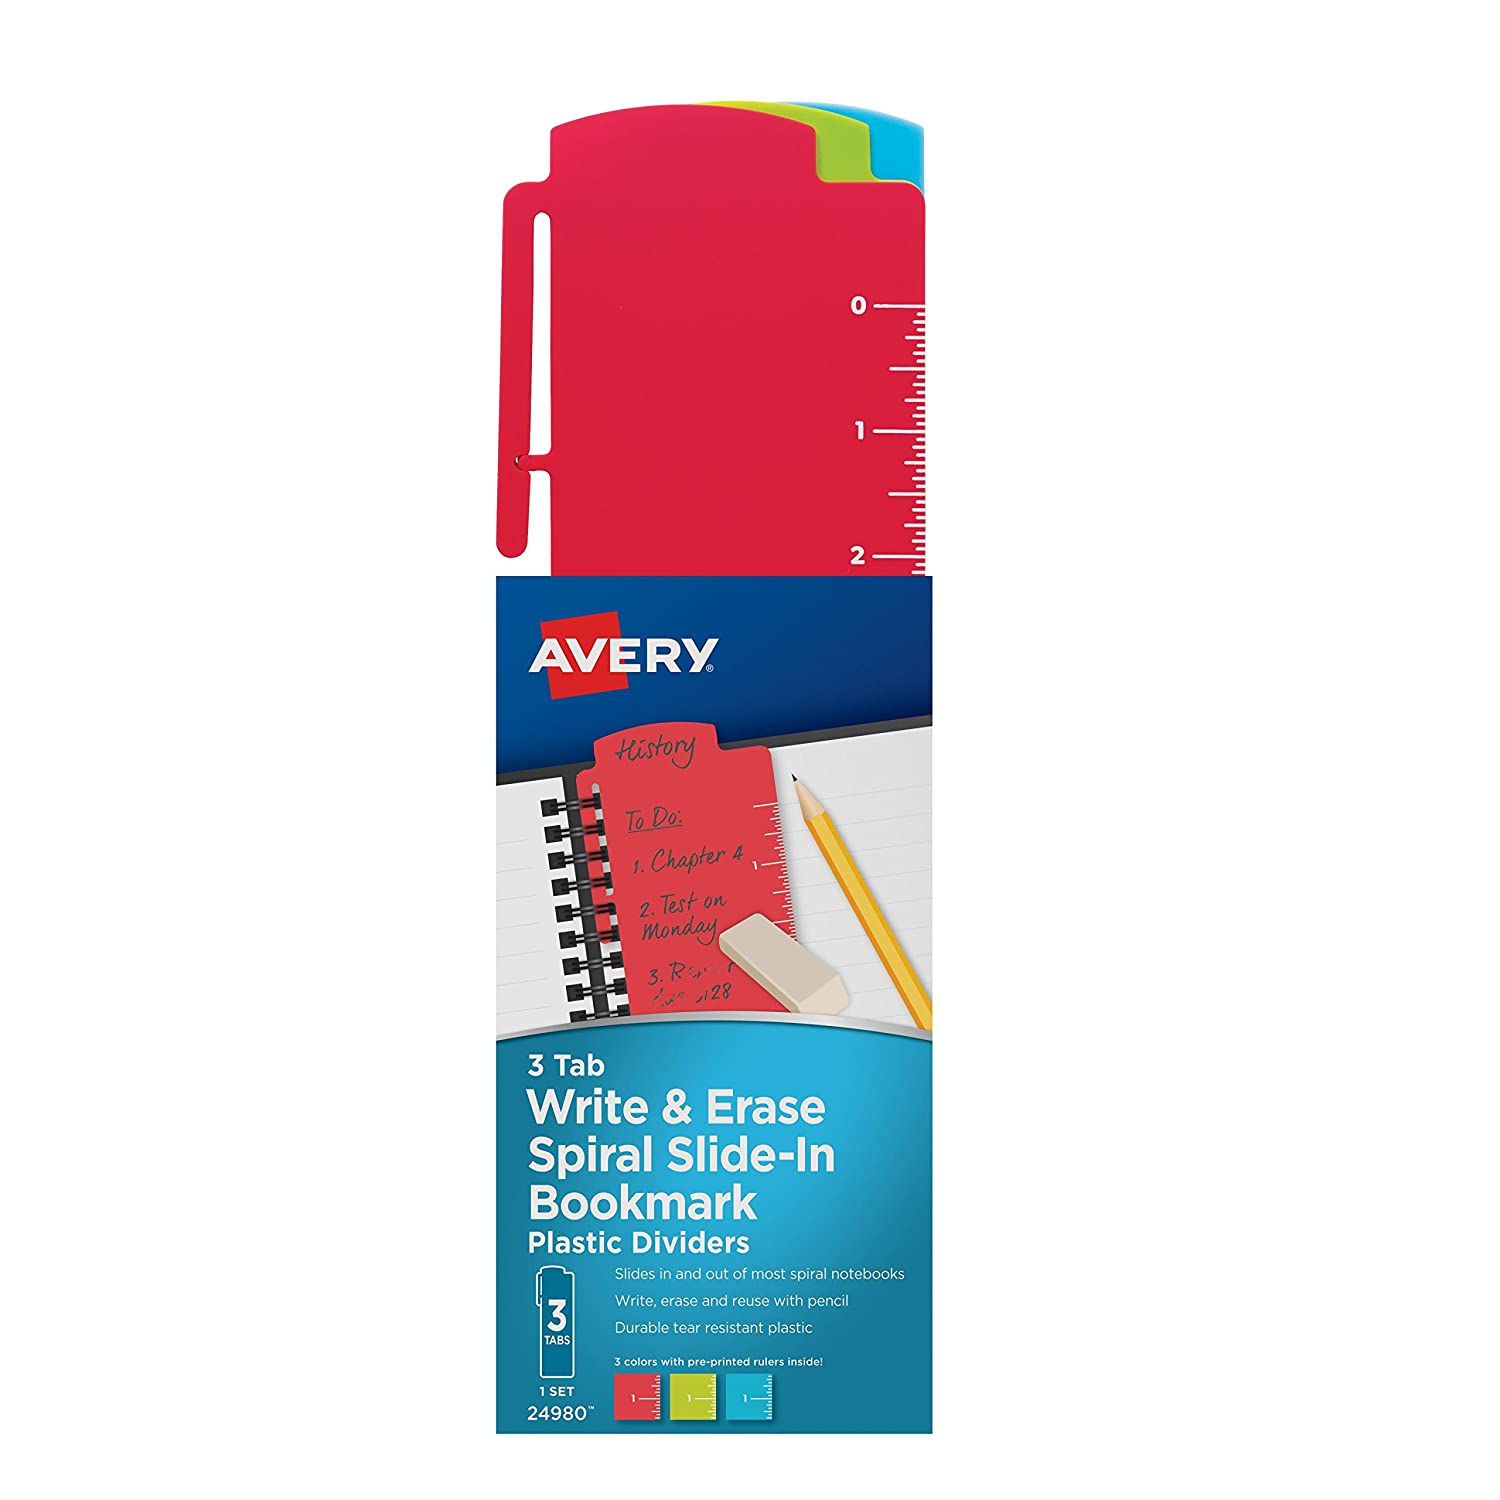 Avery Spiral Slide-In Plastic Bookmark Dividers, 3 Tabs, 1 Set, Write & Erase, Assorted Colors (24980) Avery Products Corporation